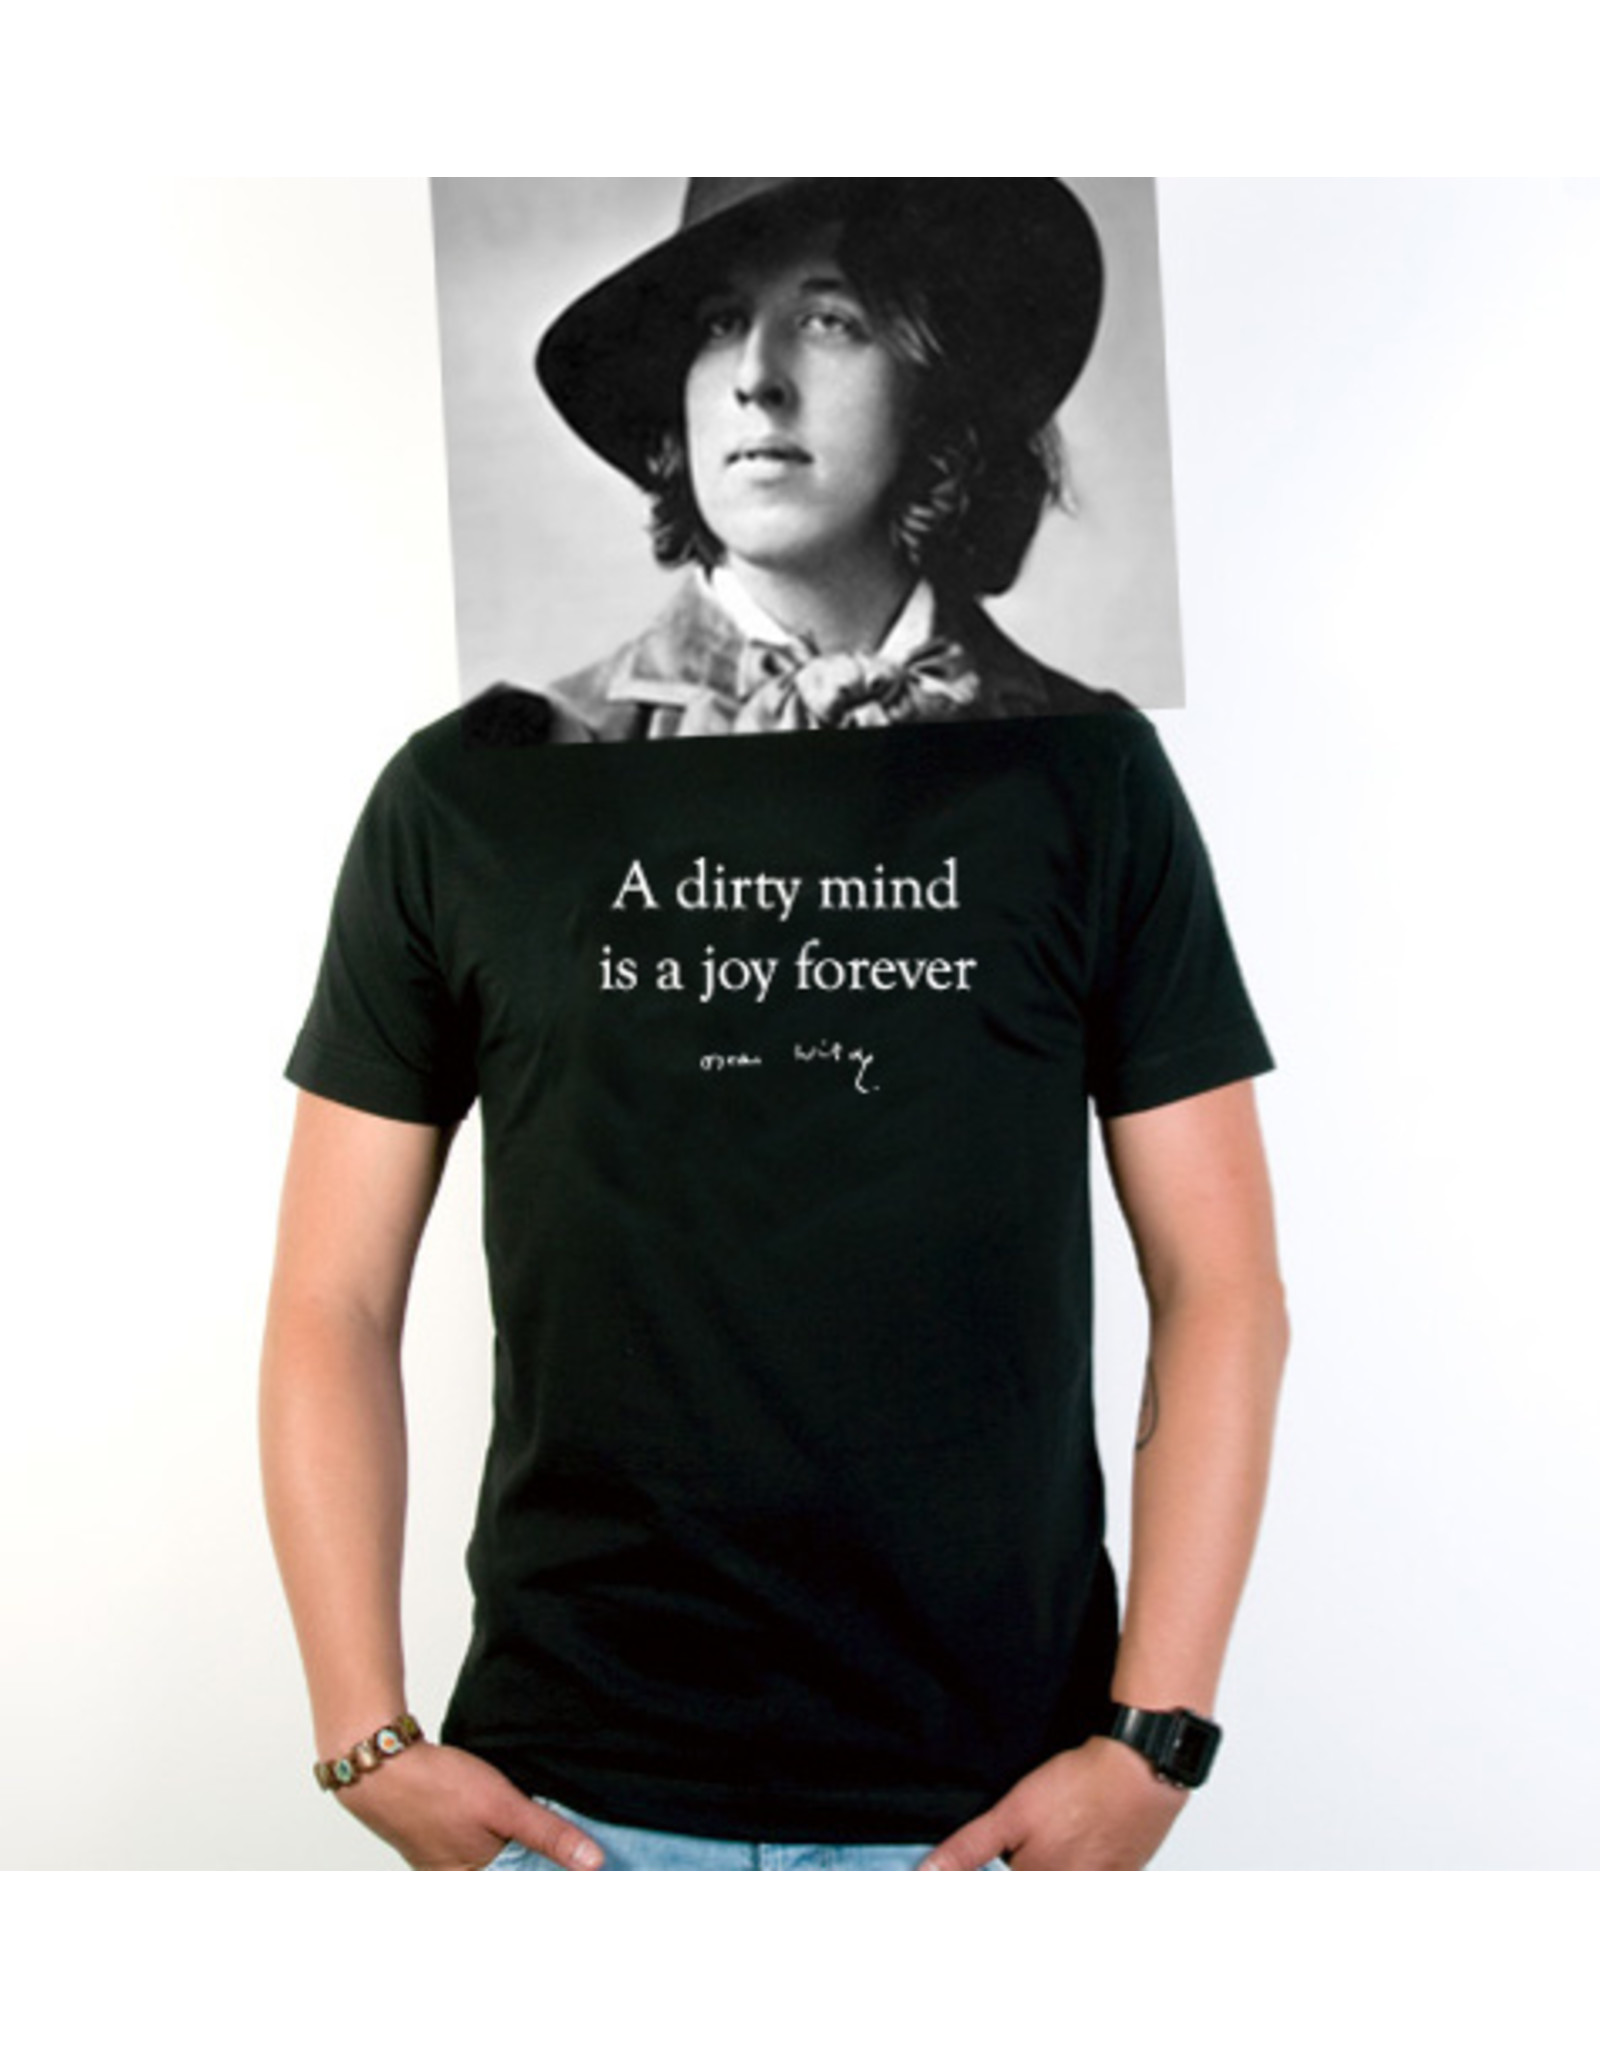 Oscar Wilde A dirty mind is a joy forever ♂